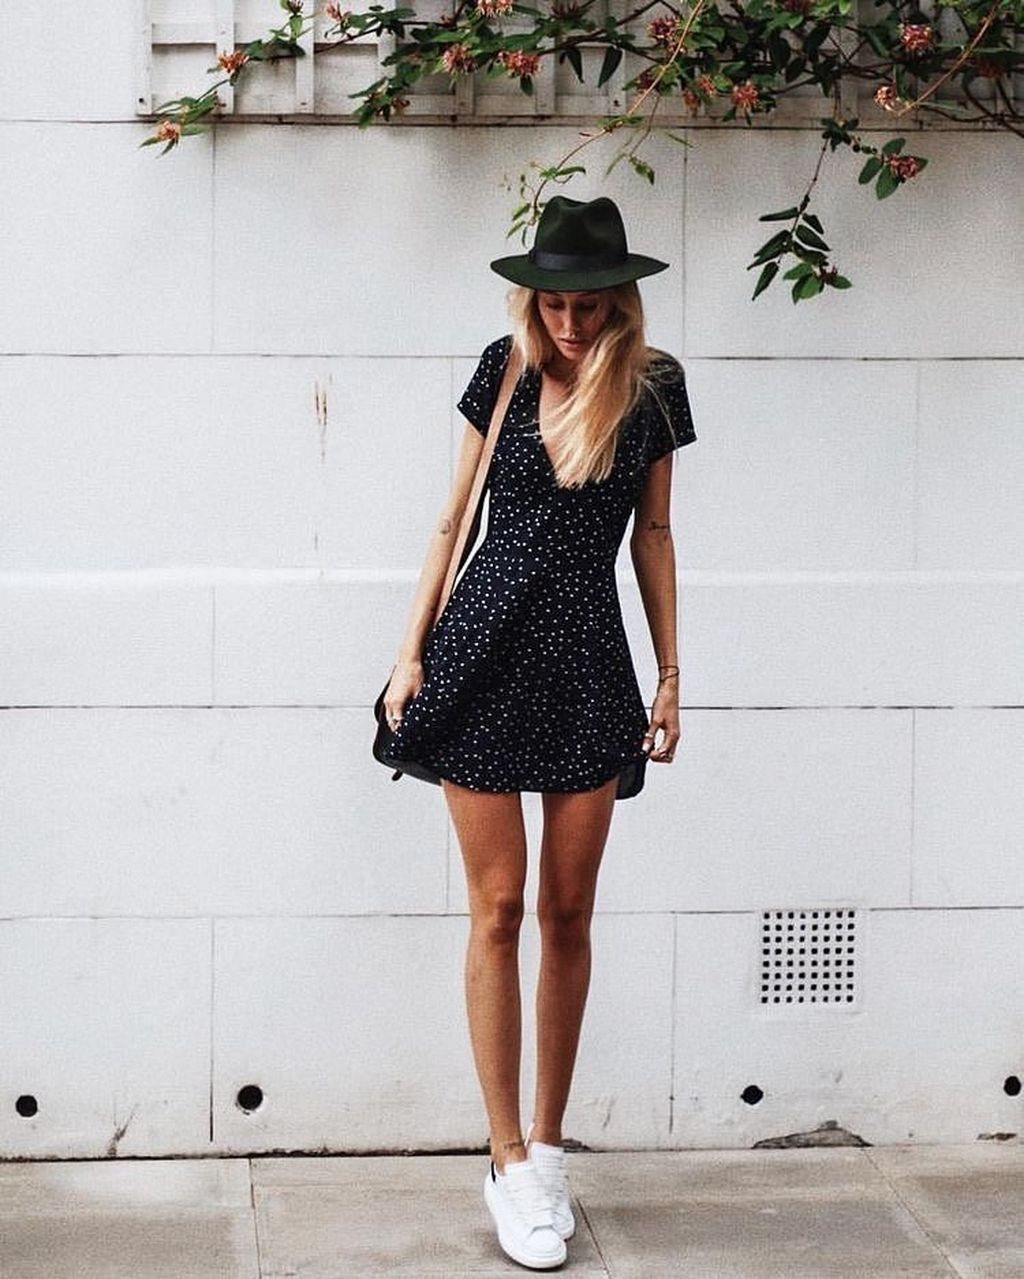 Photo of 48 Classy Summer Outfits Ideas You Should Try #summeroutfits2019 Summer at the s…